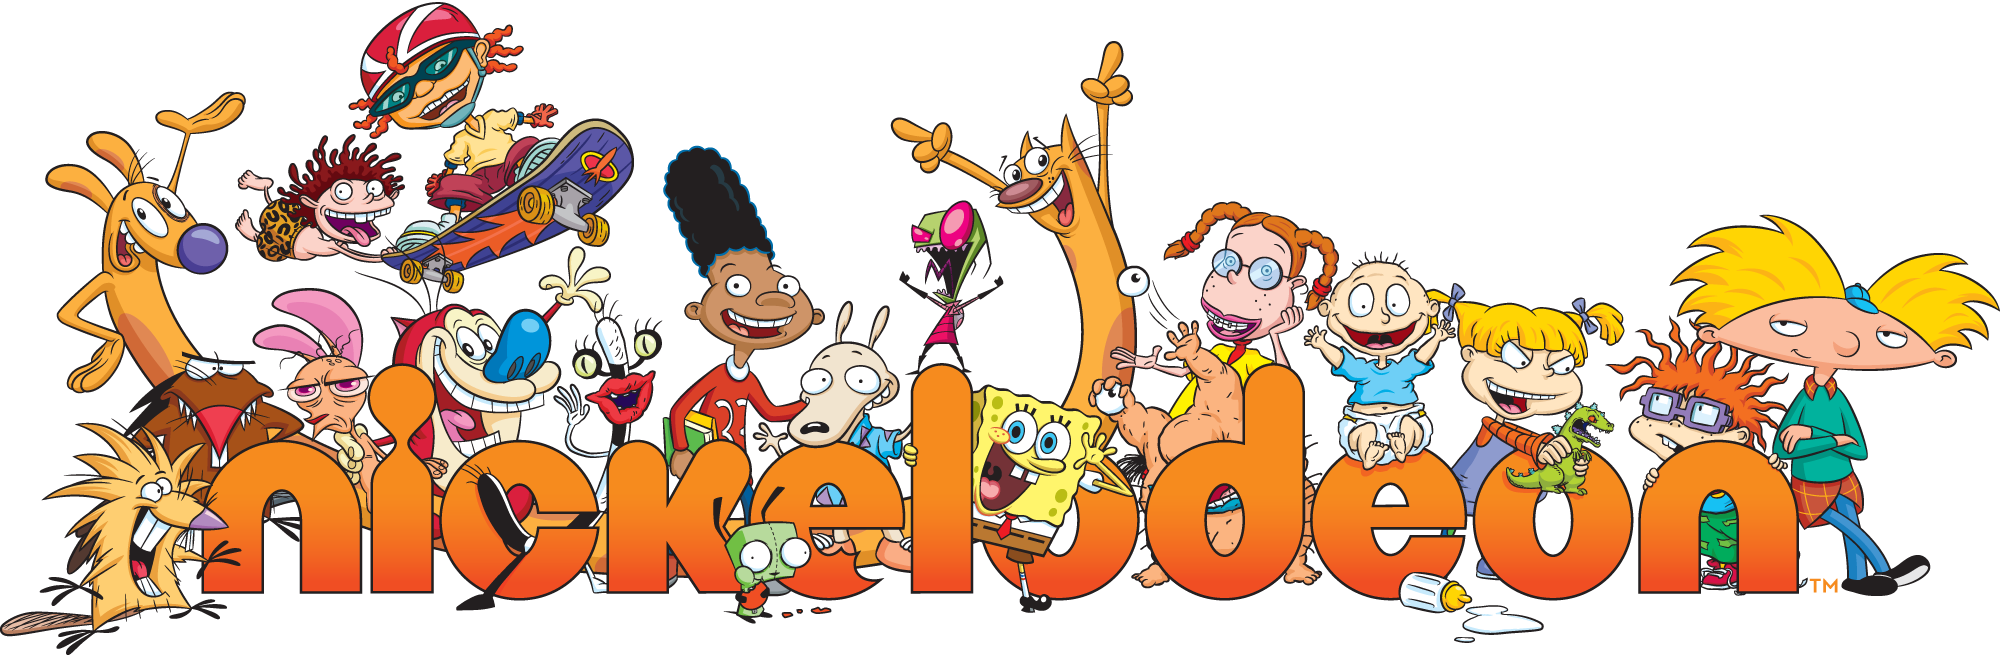 Idw games and nickelodeon announce nickelodeon splat - 90s cartoon wallpaper ...